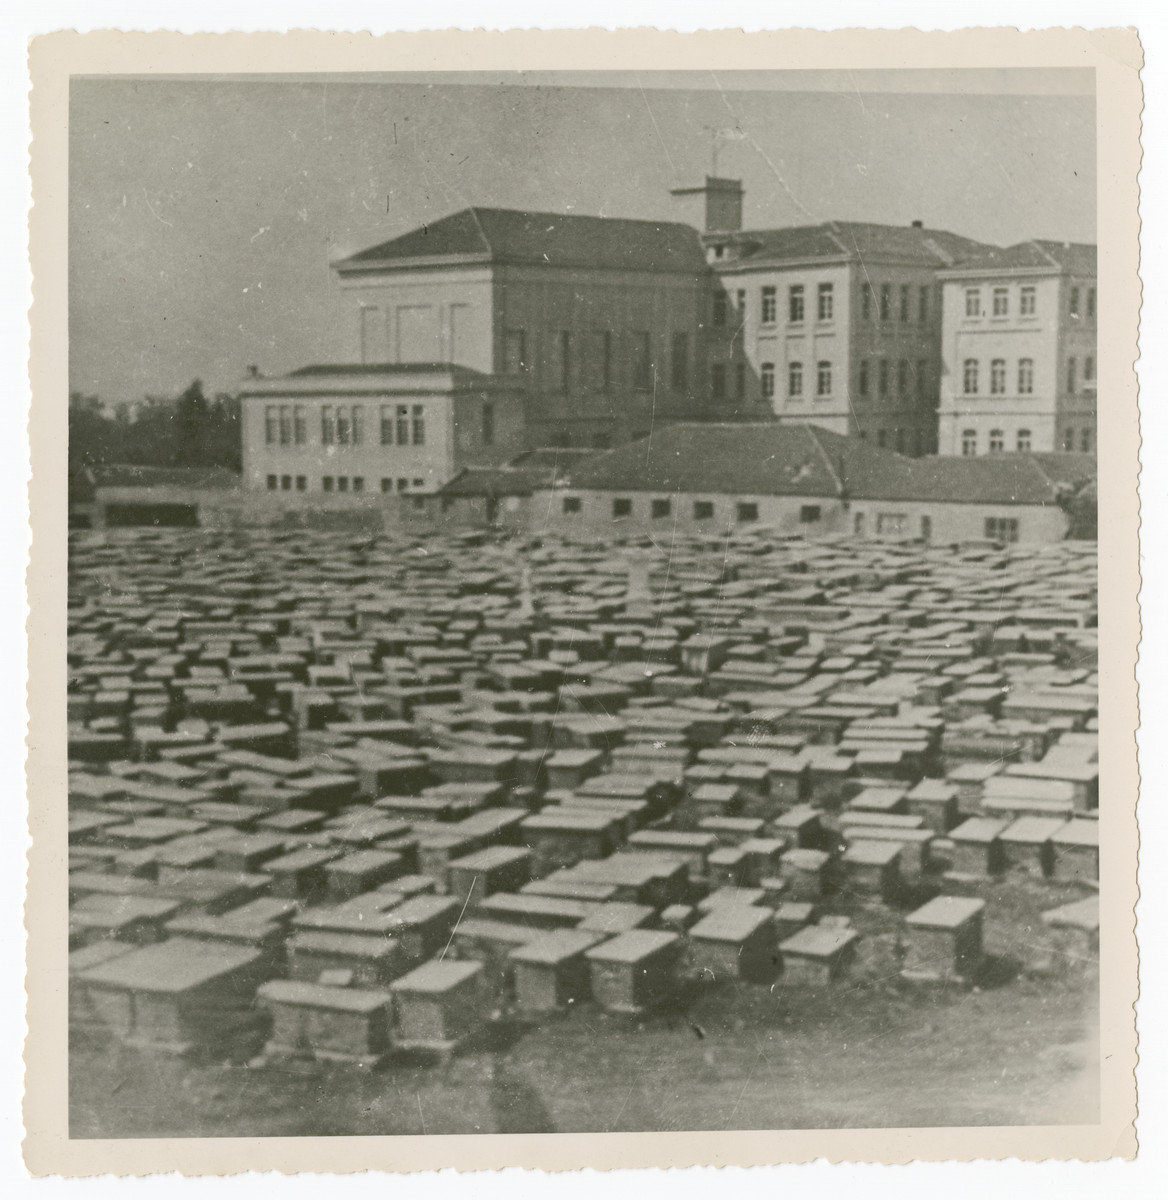 """View of the Jewish cemetery in Salonika.  The original caption reads """"Cemetery prewar.  500,000 graves in past 500 years."""""""